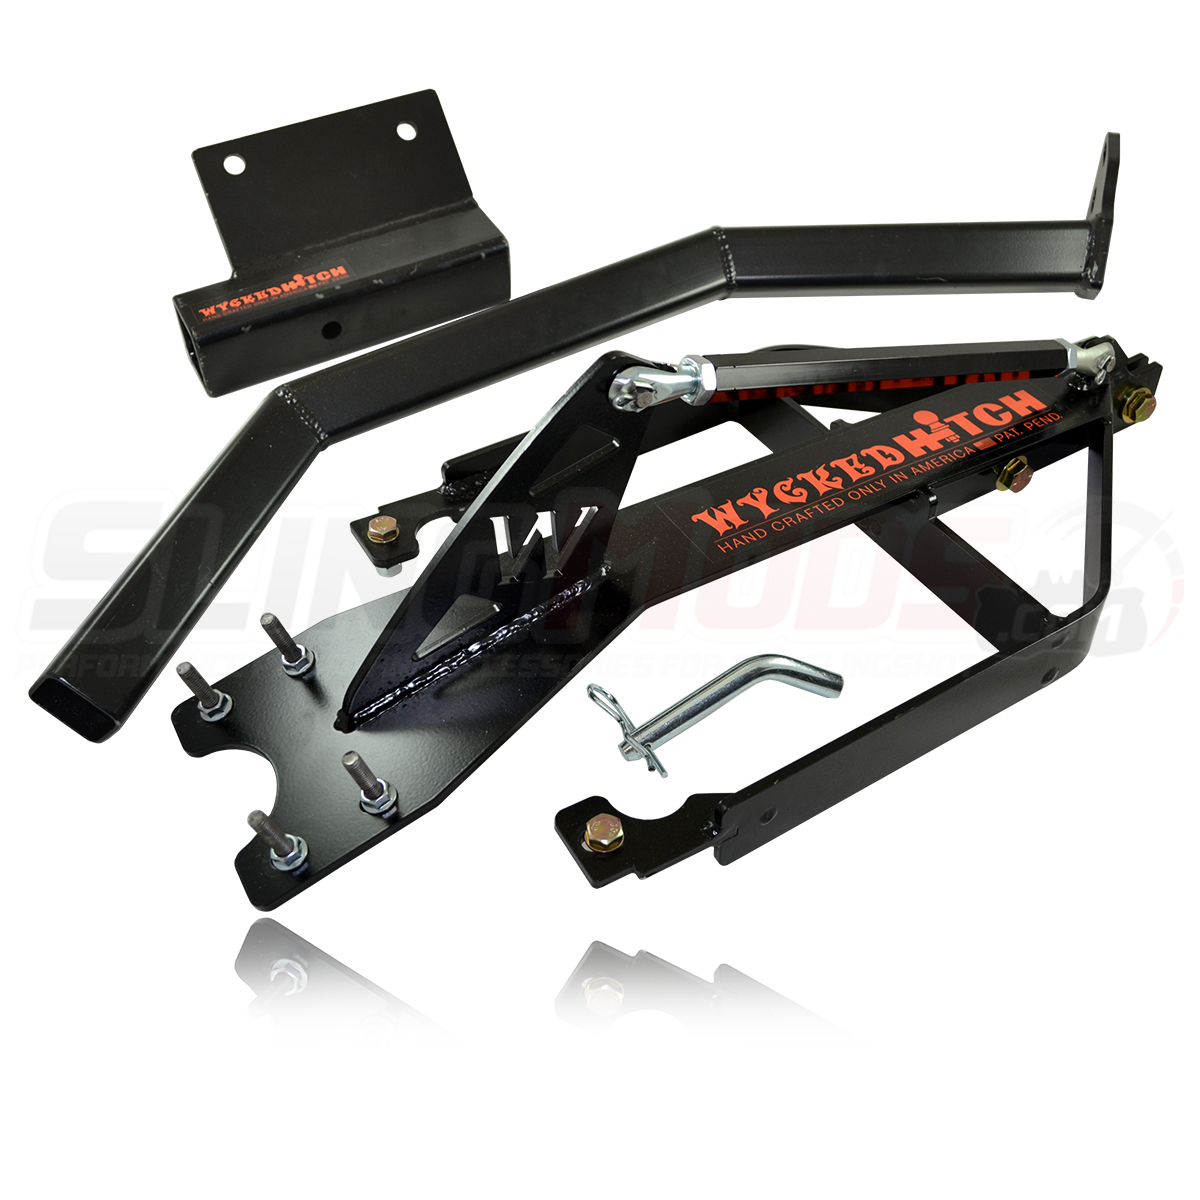 Wycked Hitch Trailer Hitch System for the Polaris Slingshot